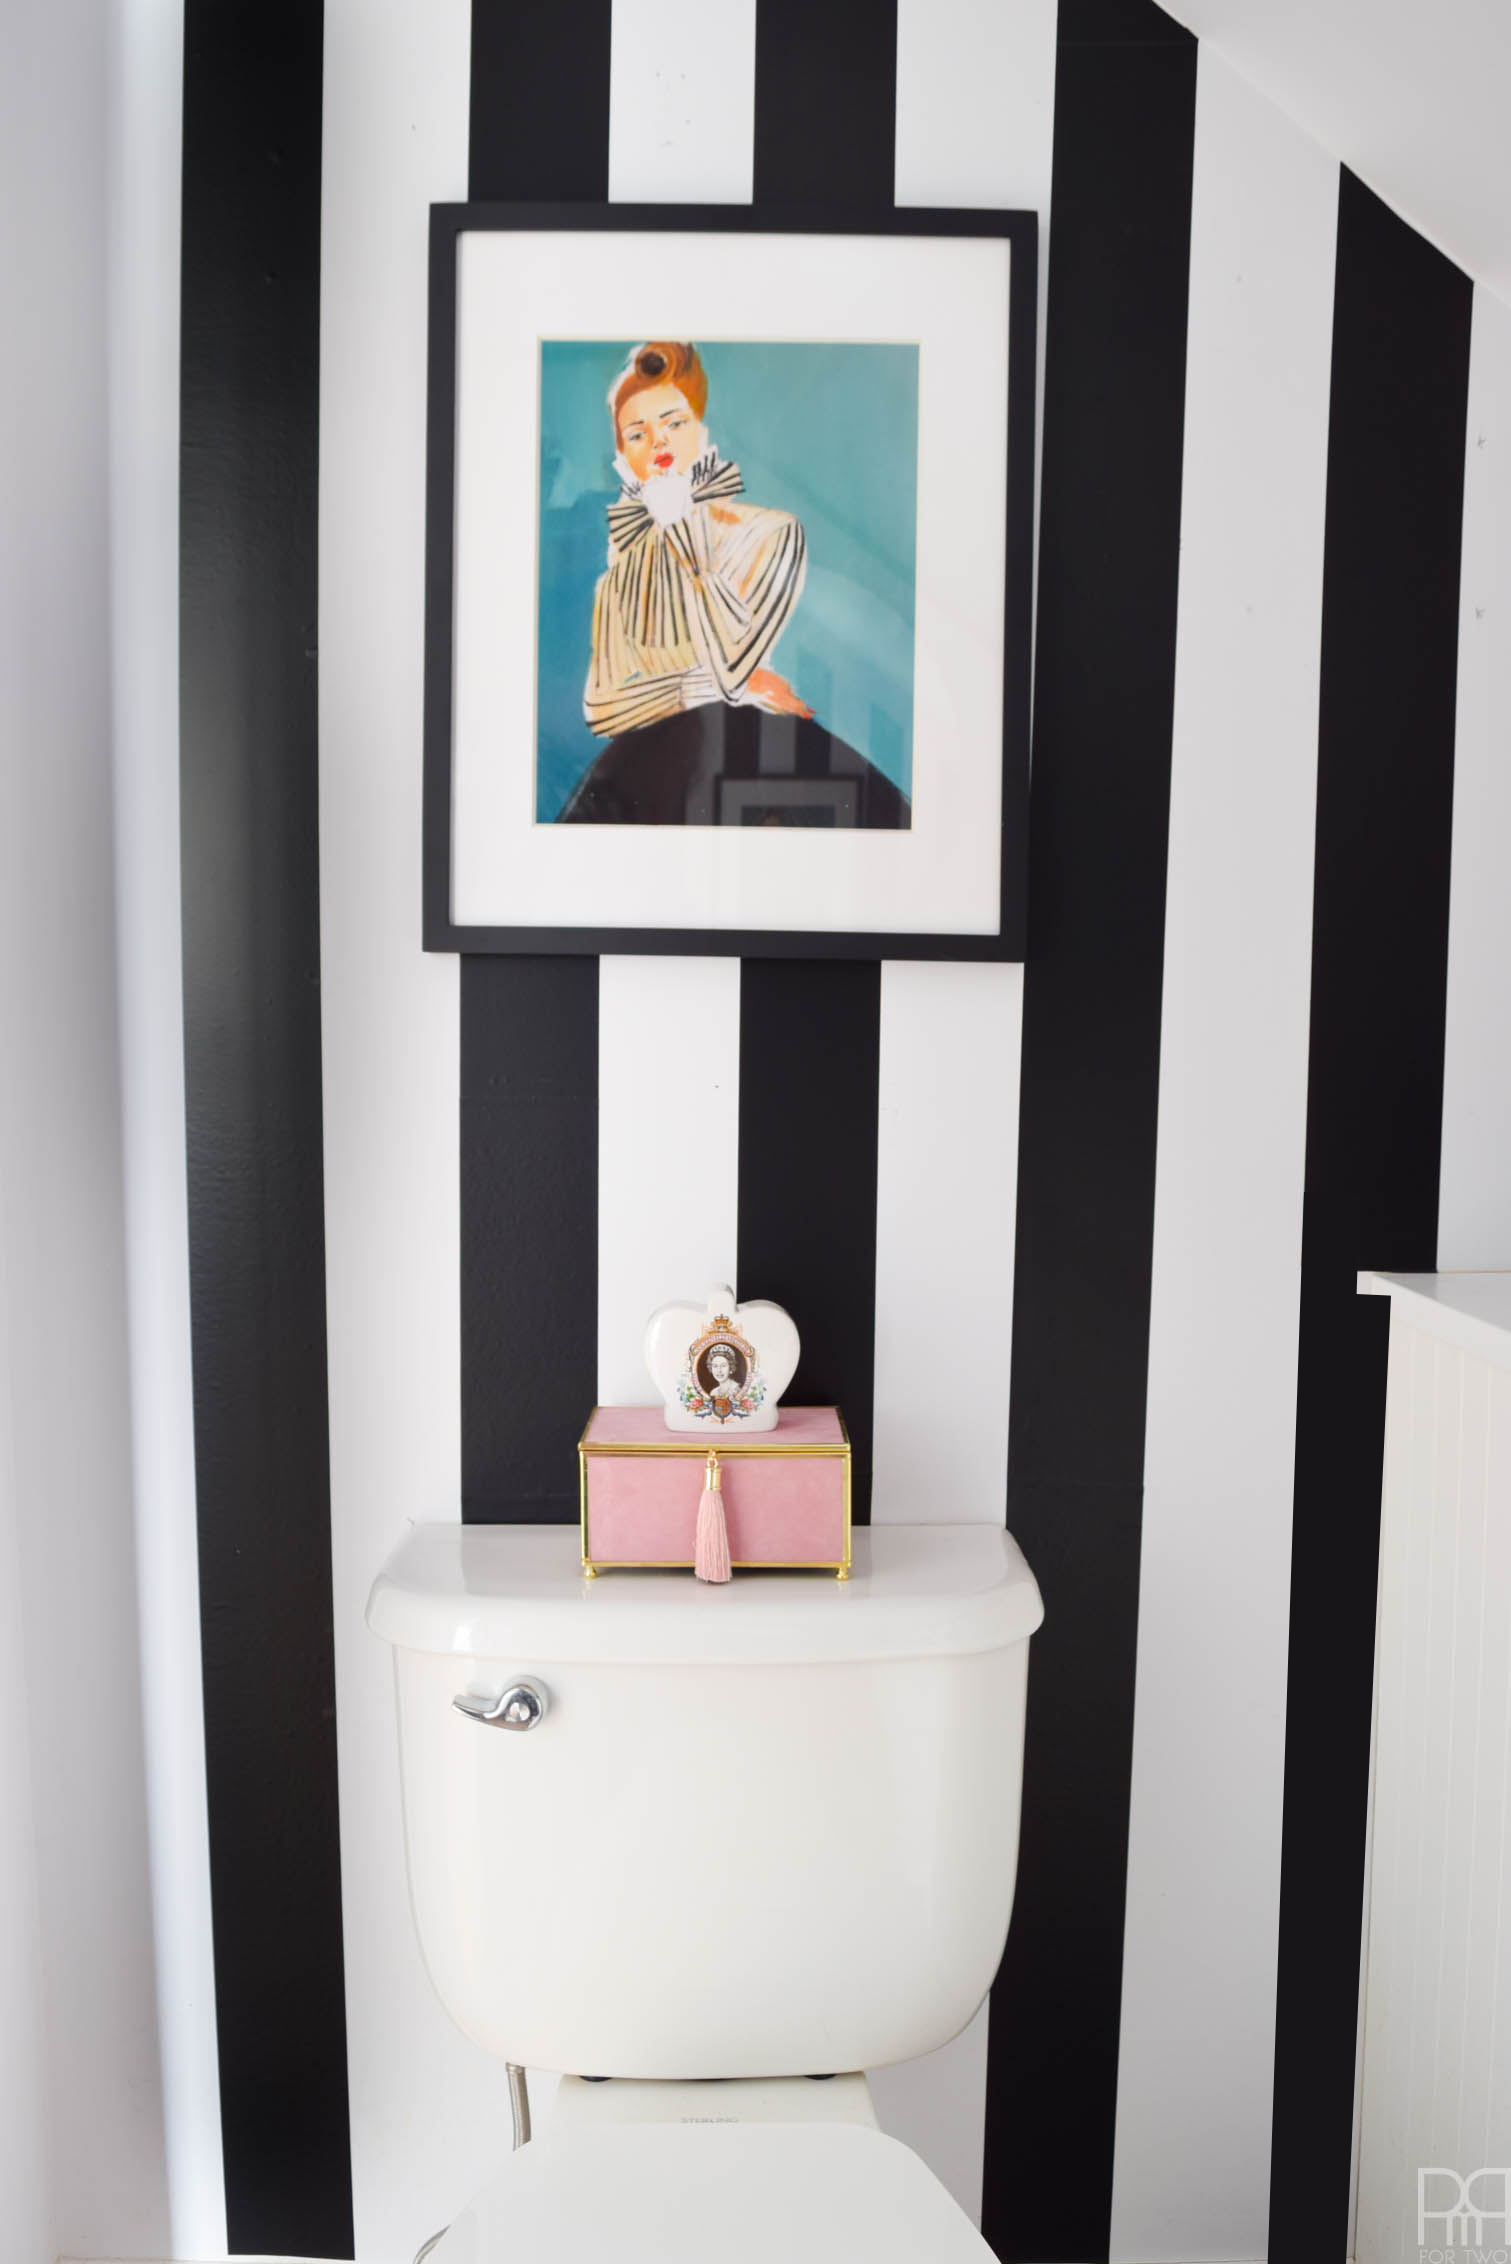 Ever wanted to go for a bold striped wall, but were afraid of the commitment? With Tempaper's stripes, you can easily create your own pattern. The best part is that you can remove and re-position things!